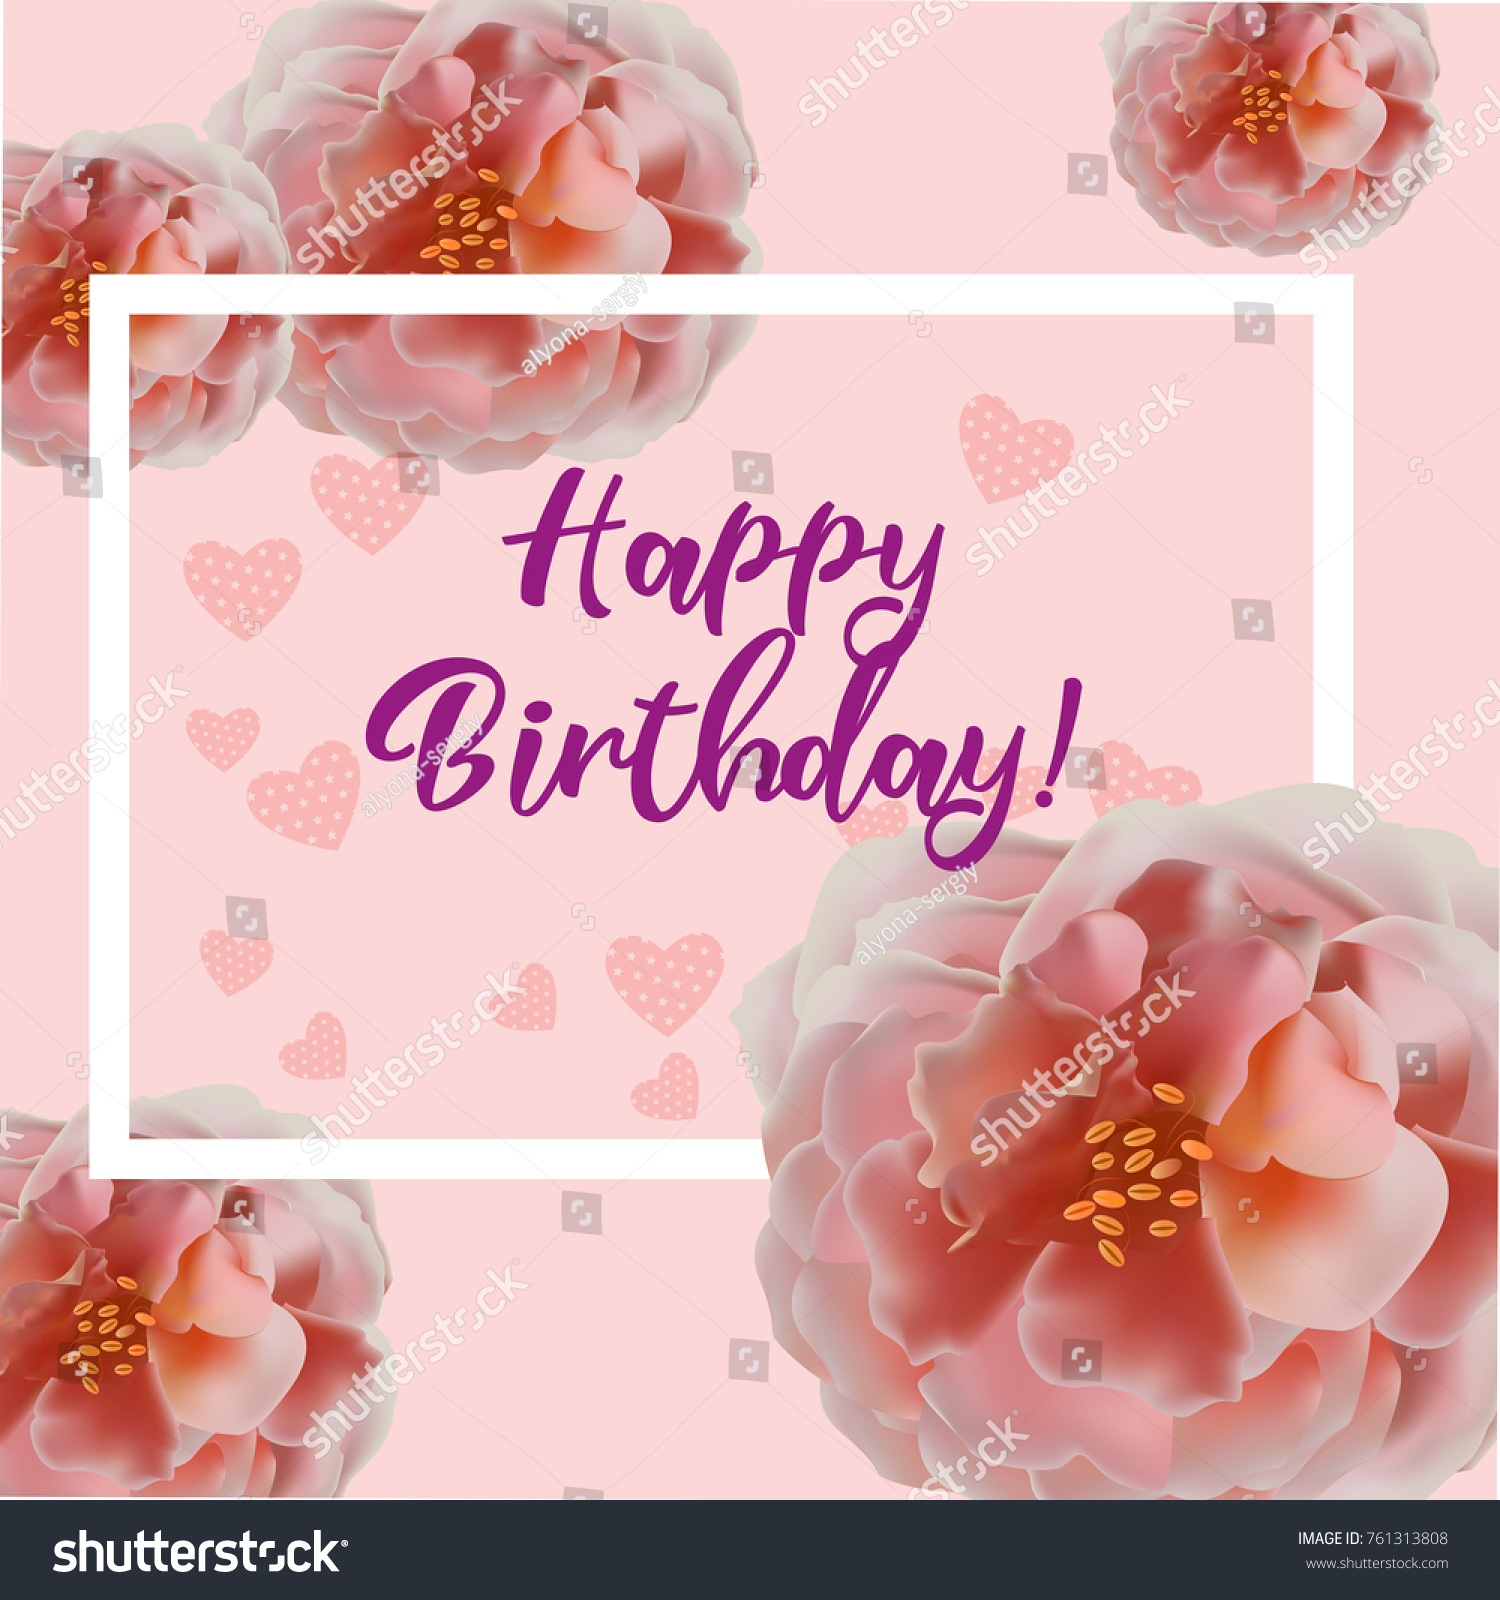 Happy birthday flowers blossom greeting card stock vector 761313808 happy birthday flowers blossom greeting card template calligraphic happy holiday text holiday border izmirmasajfo